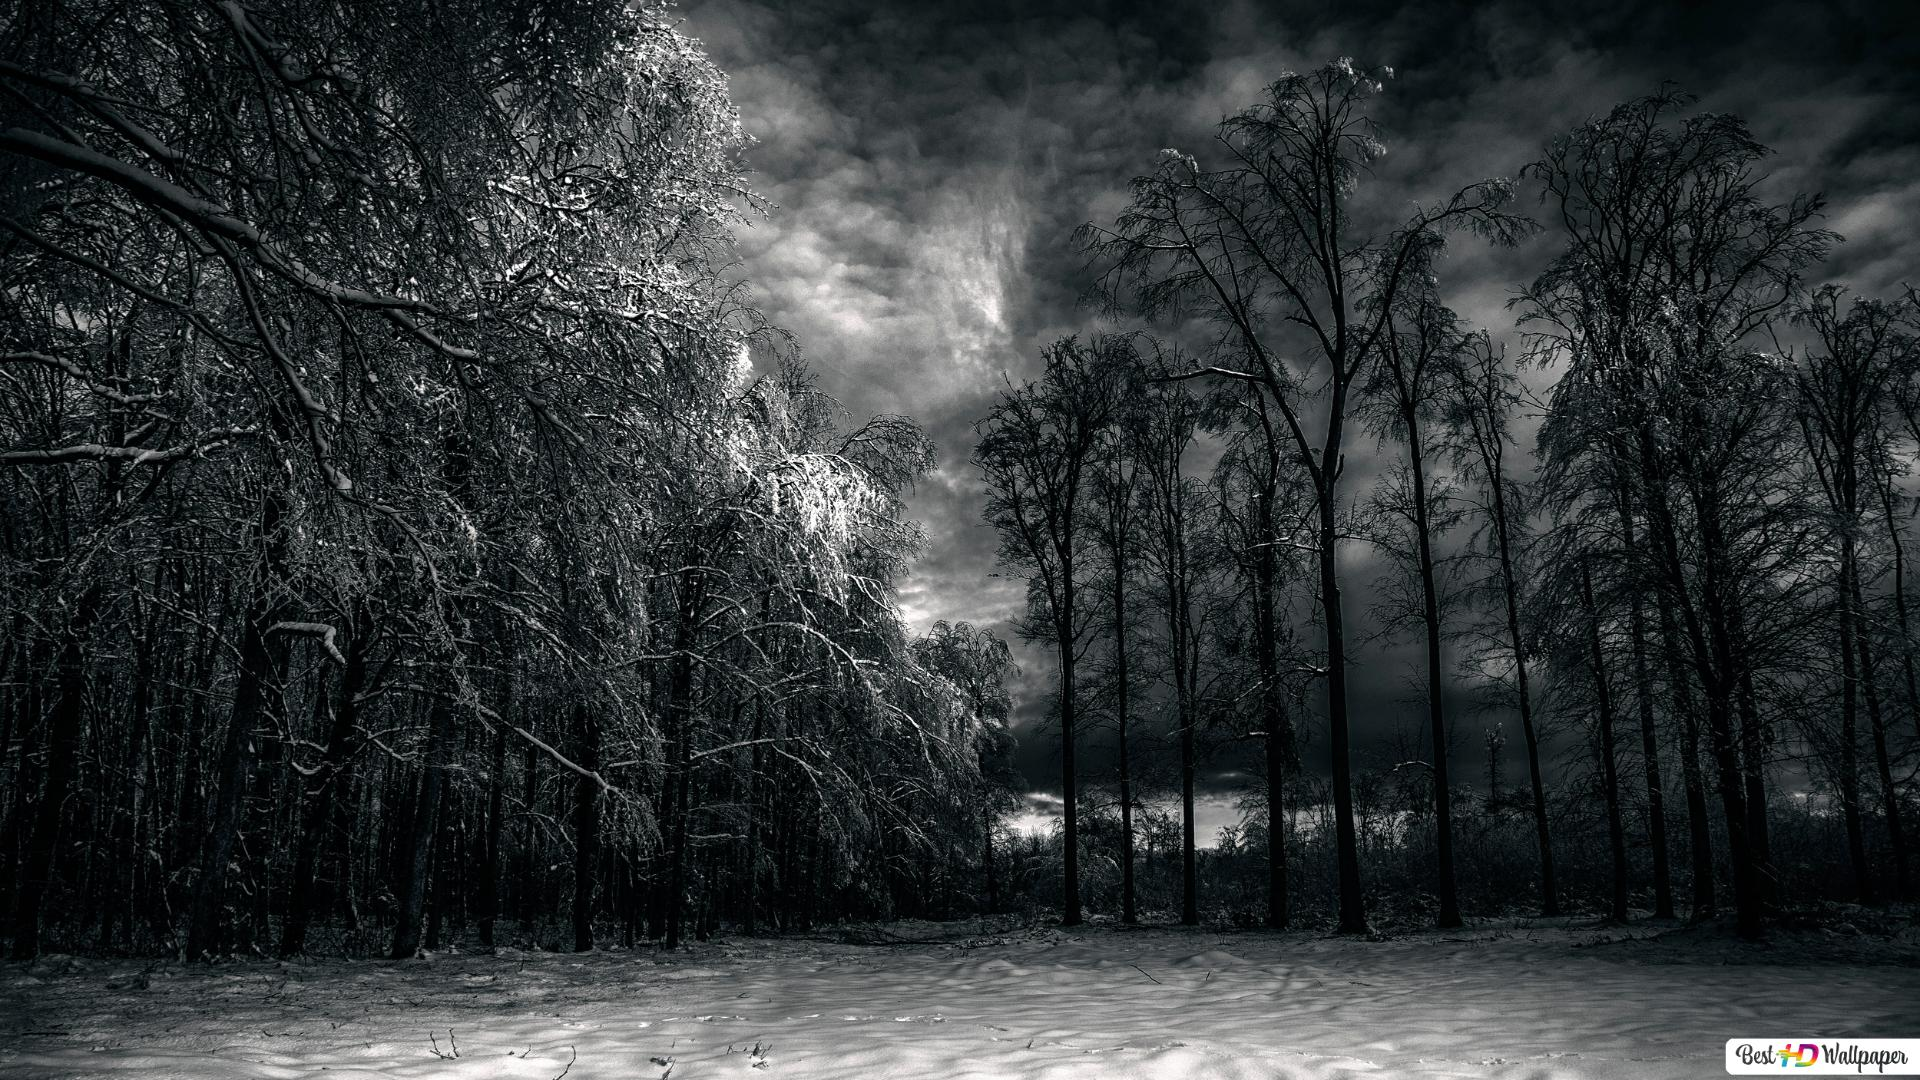 Cloudy Winter Night Hd Wallpaper Download